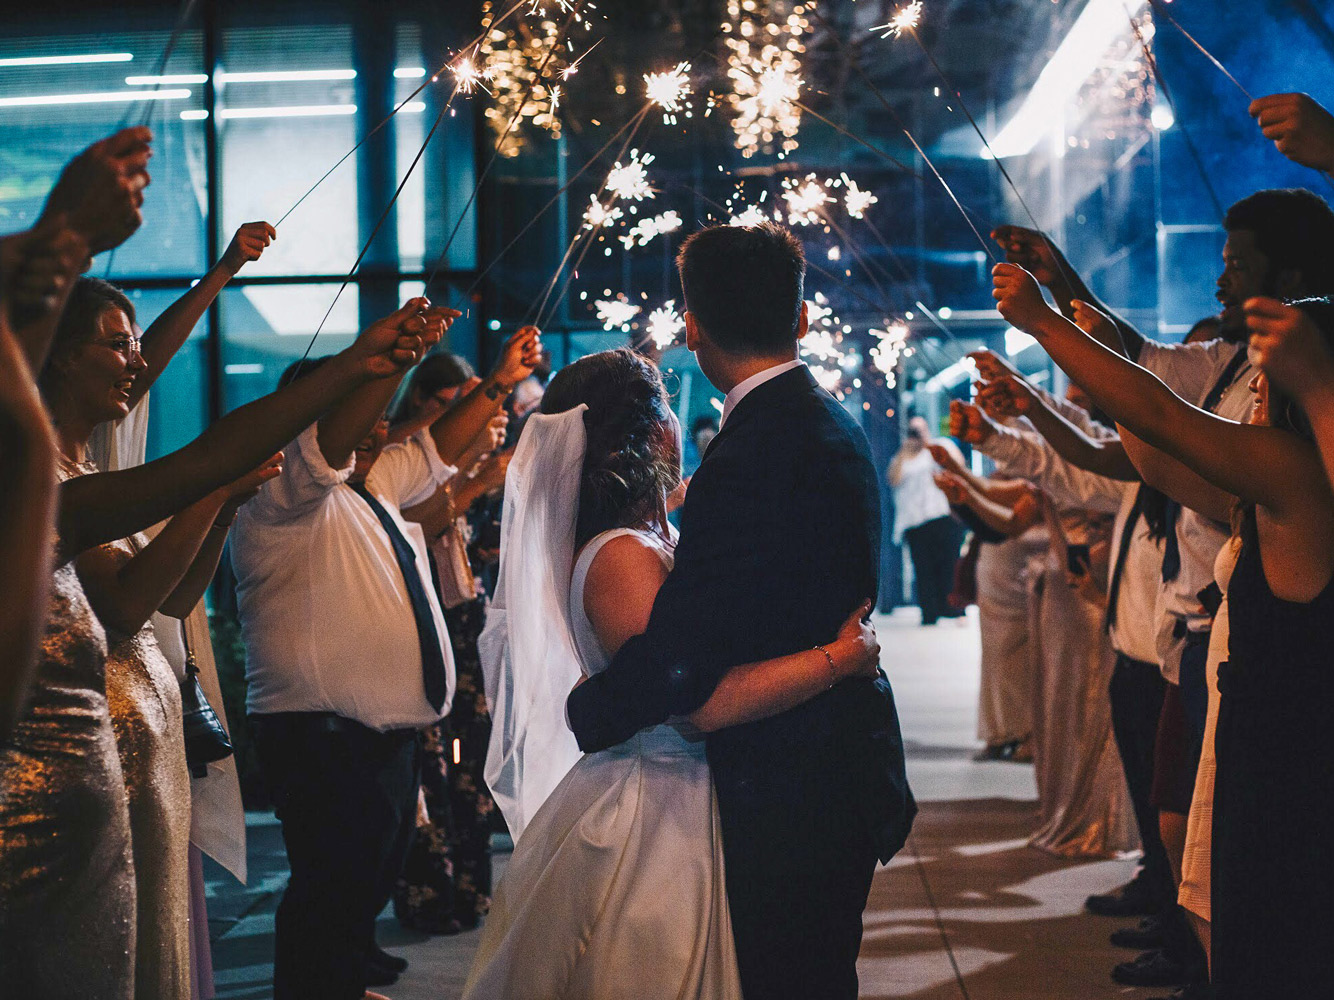 A newly married couple embraces and looks at a tunnel of sparklers held aloft by wedding guests